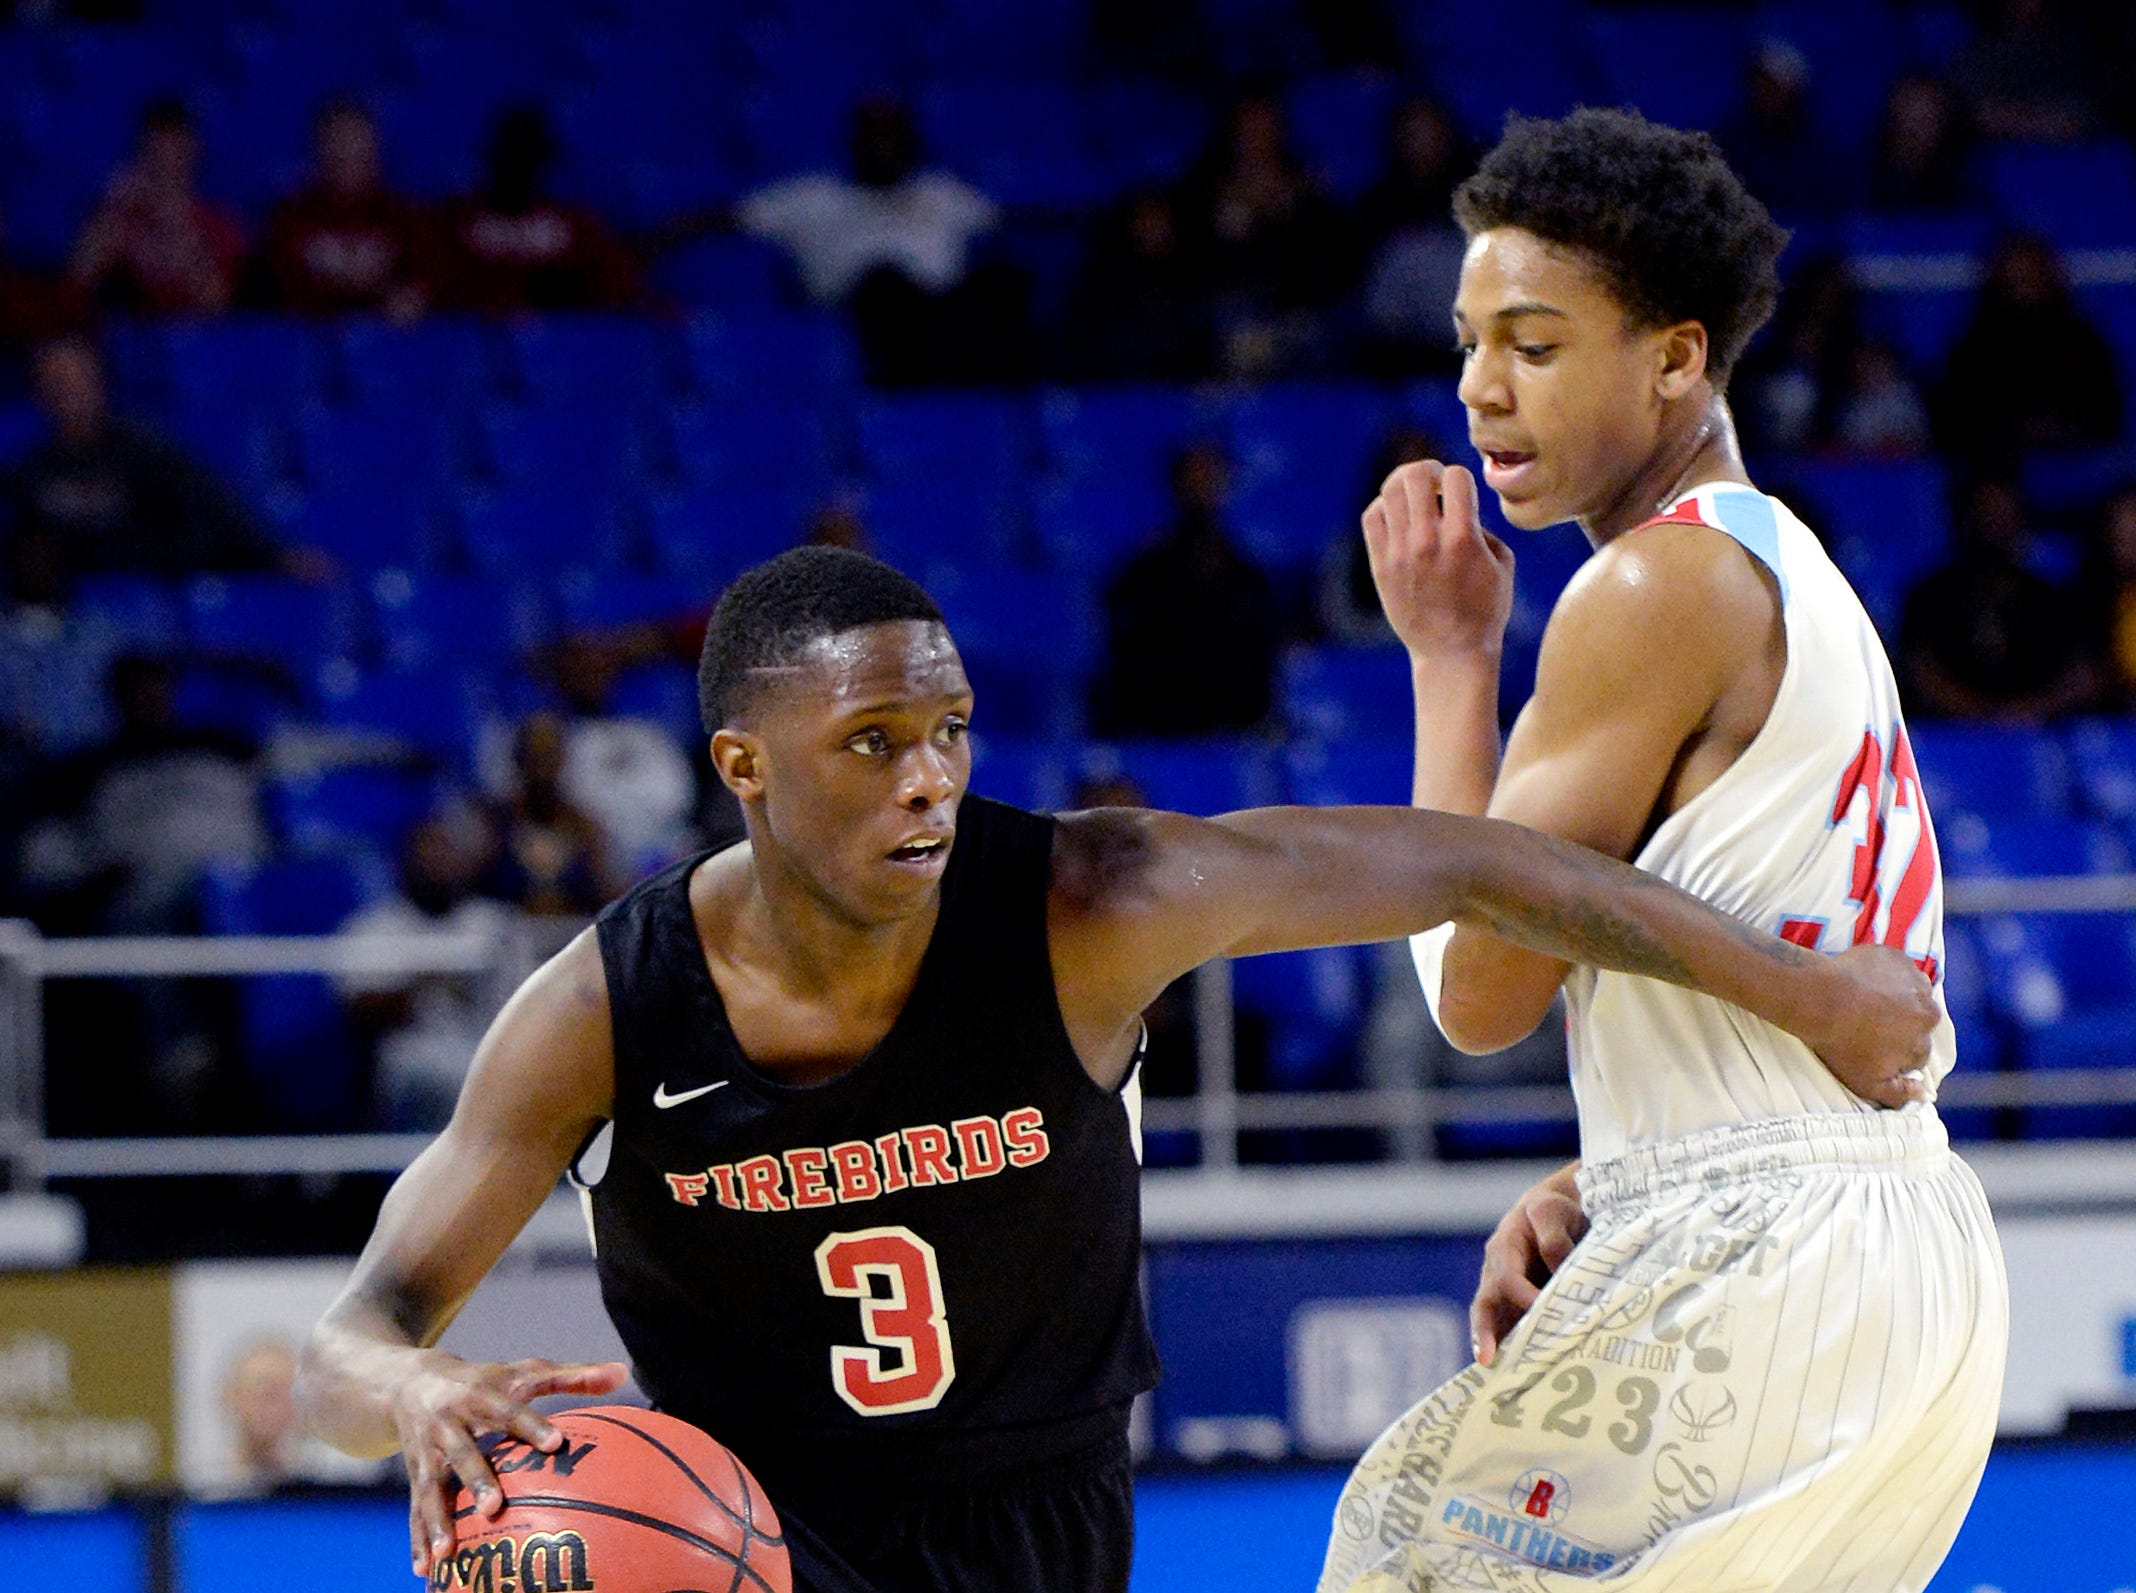 Pearl-Cohn guard William Shaw (3) drives past Brainerd forward Cameron Evans (32) during the first half of a Class AA boys state basketball quarterfinal game Wednesday, March 13, 2019, in Murfreesboro, Tenn.